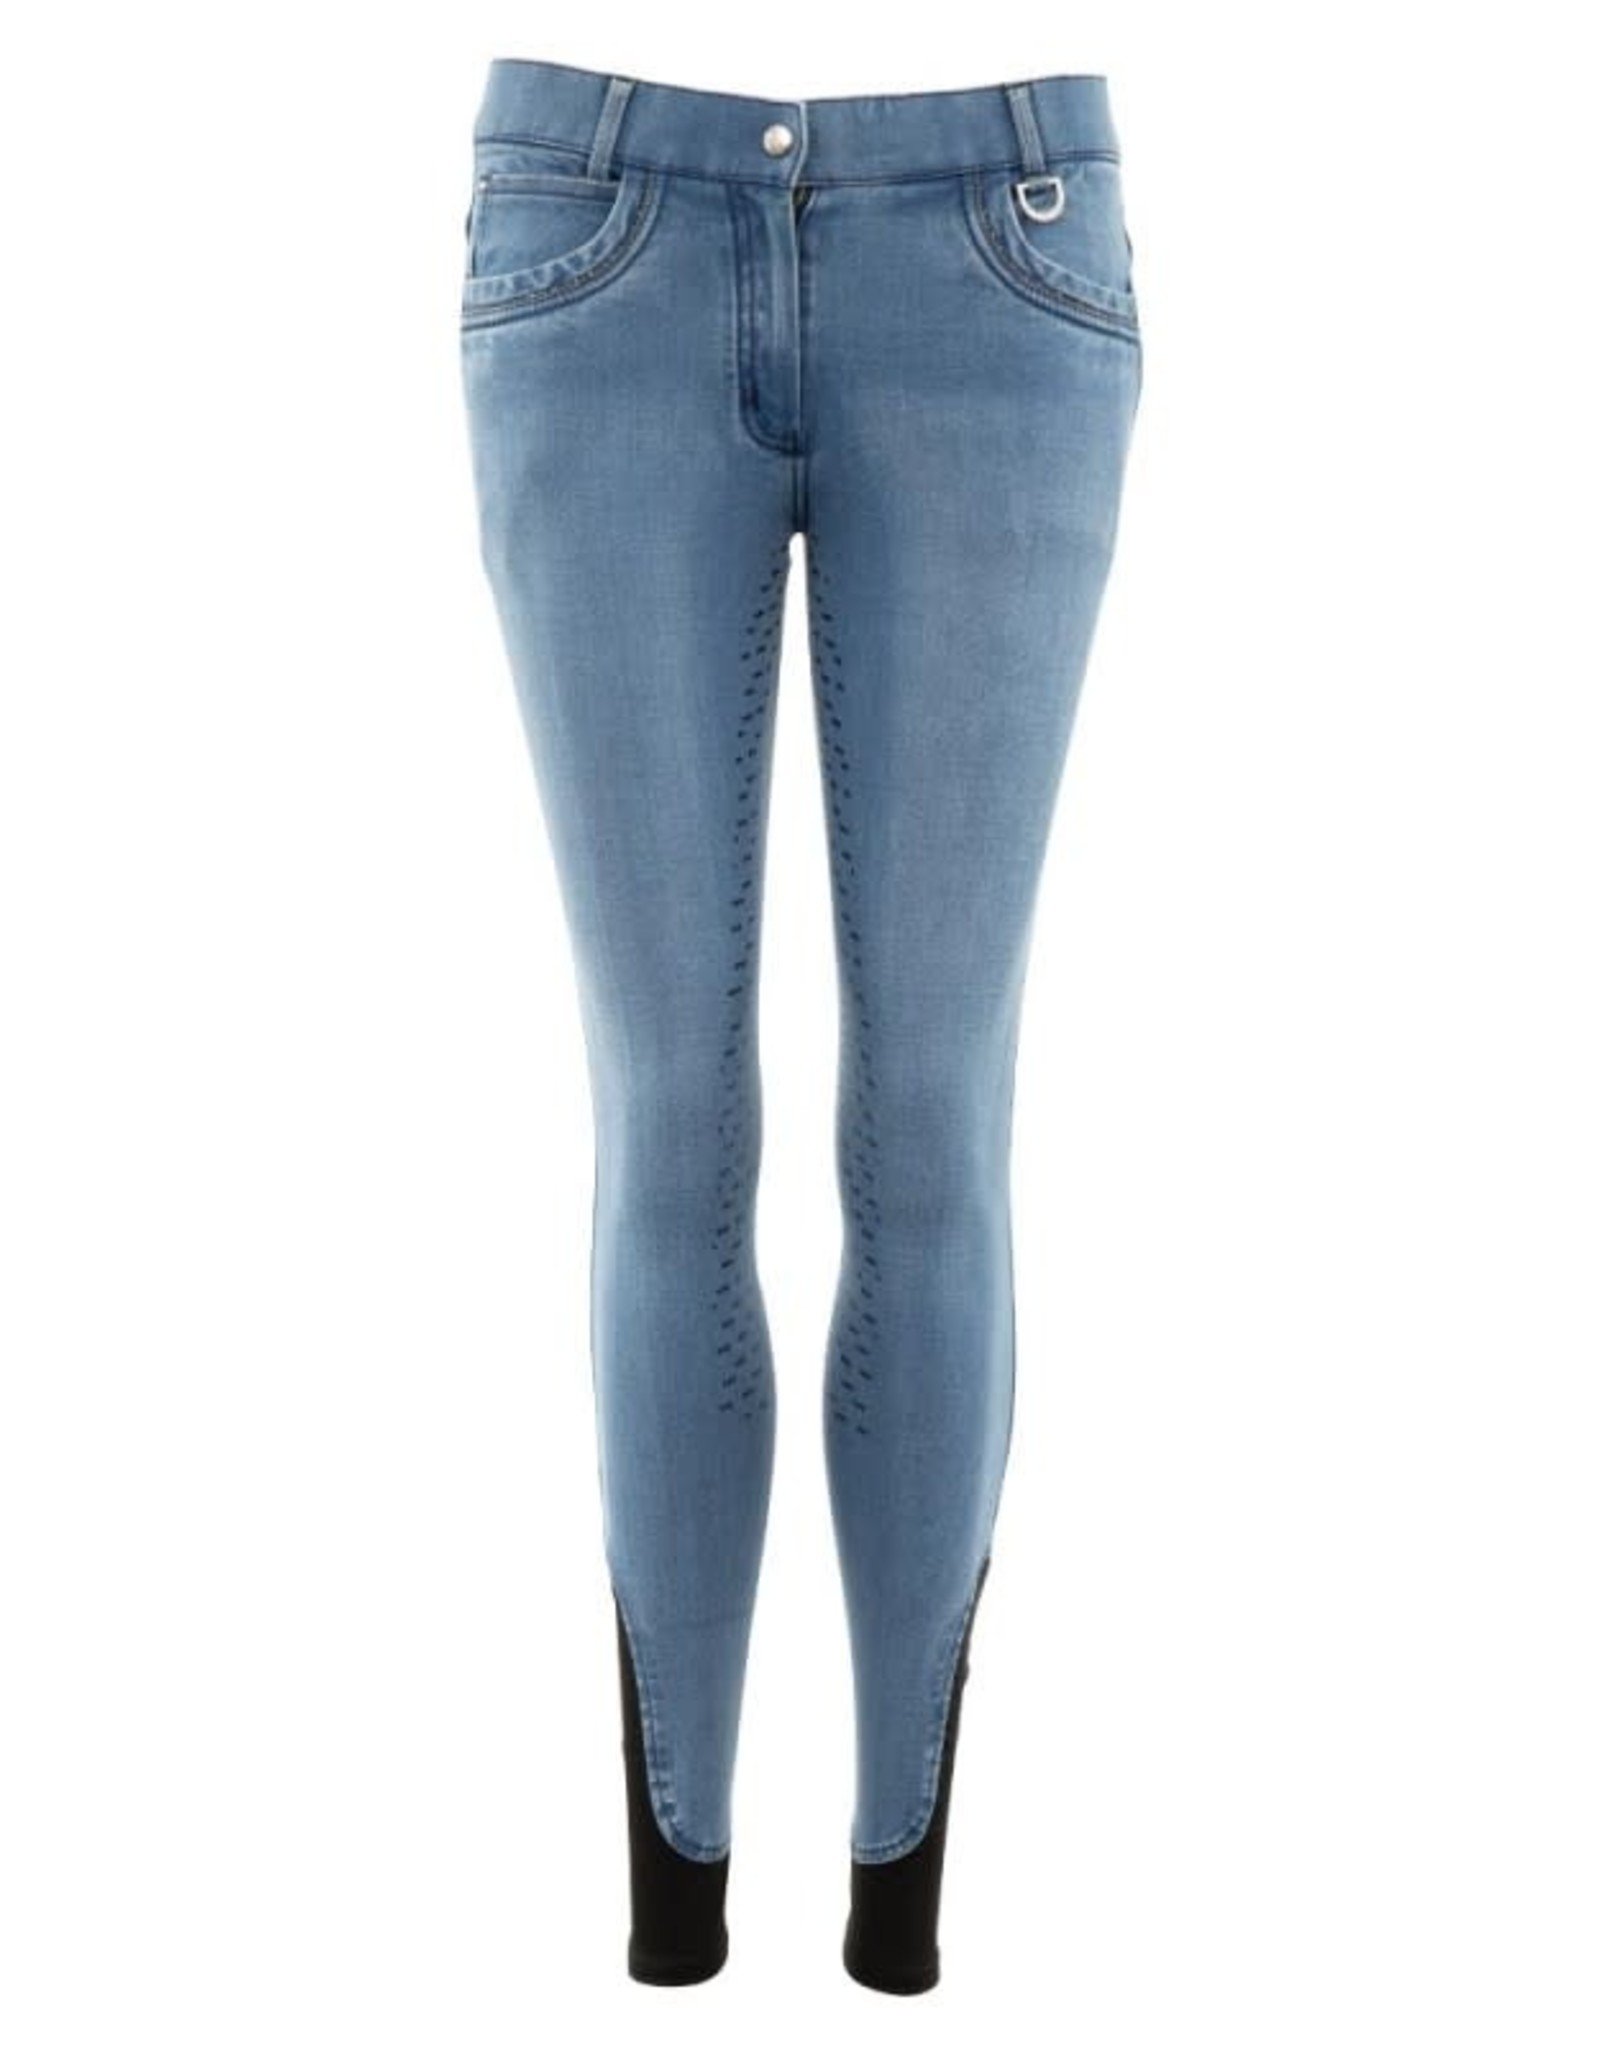 BR BR Rijbroek Mirte Dames Denim blue